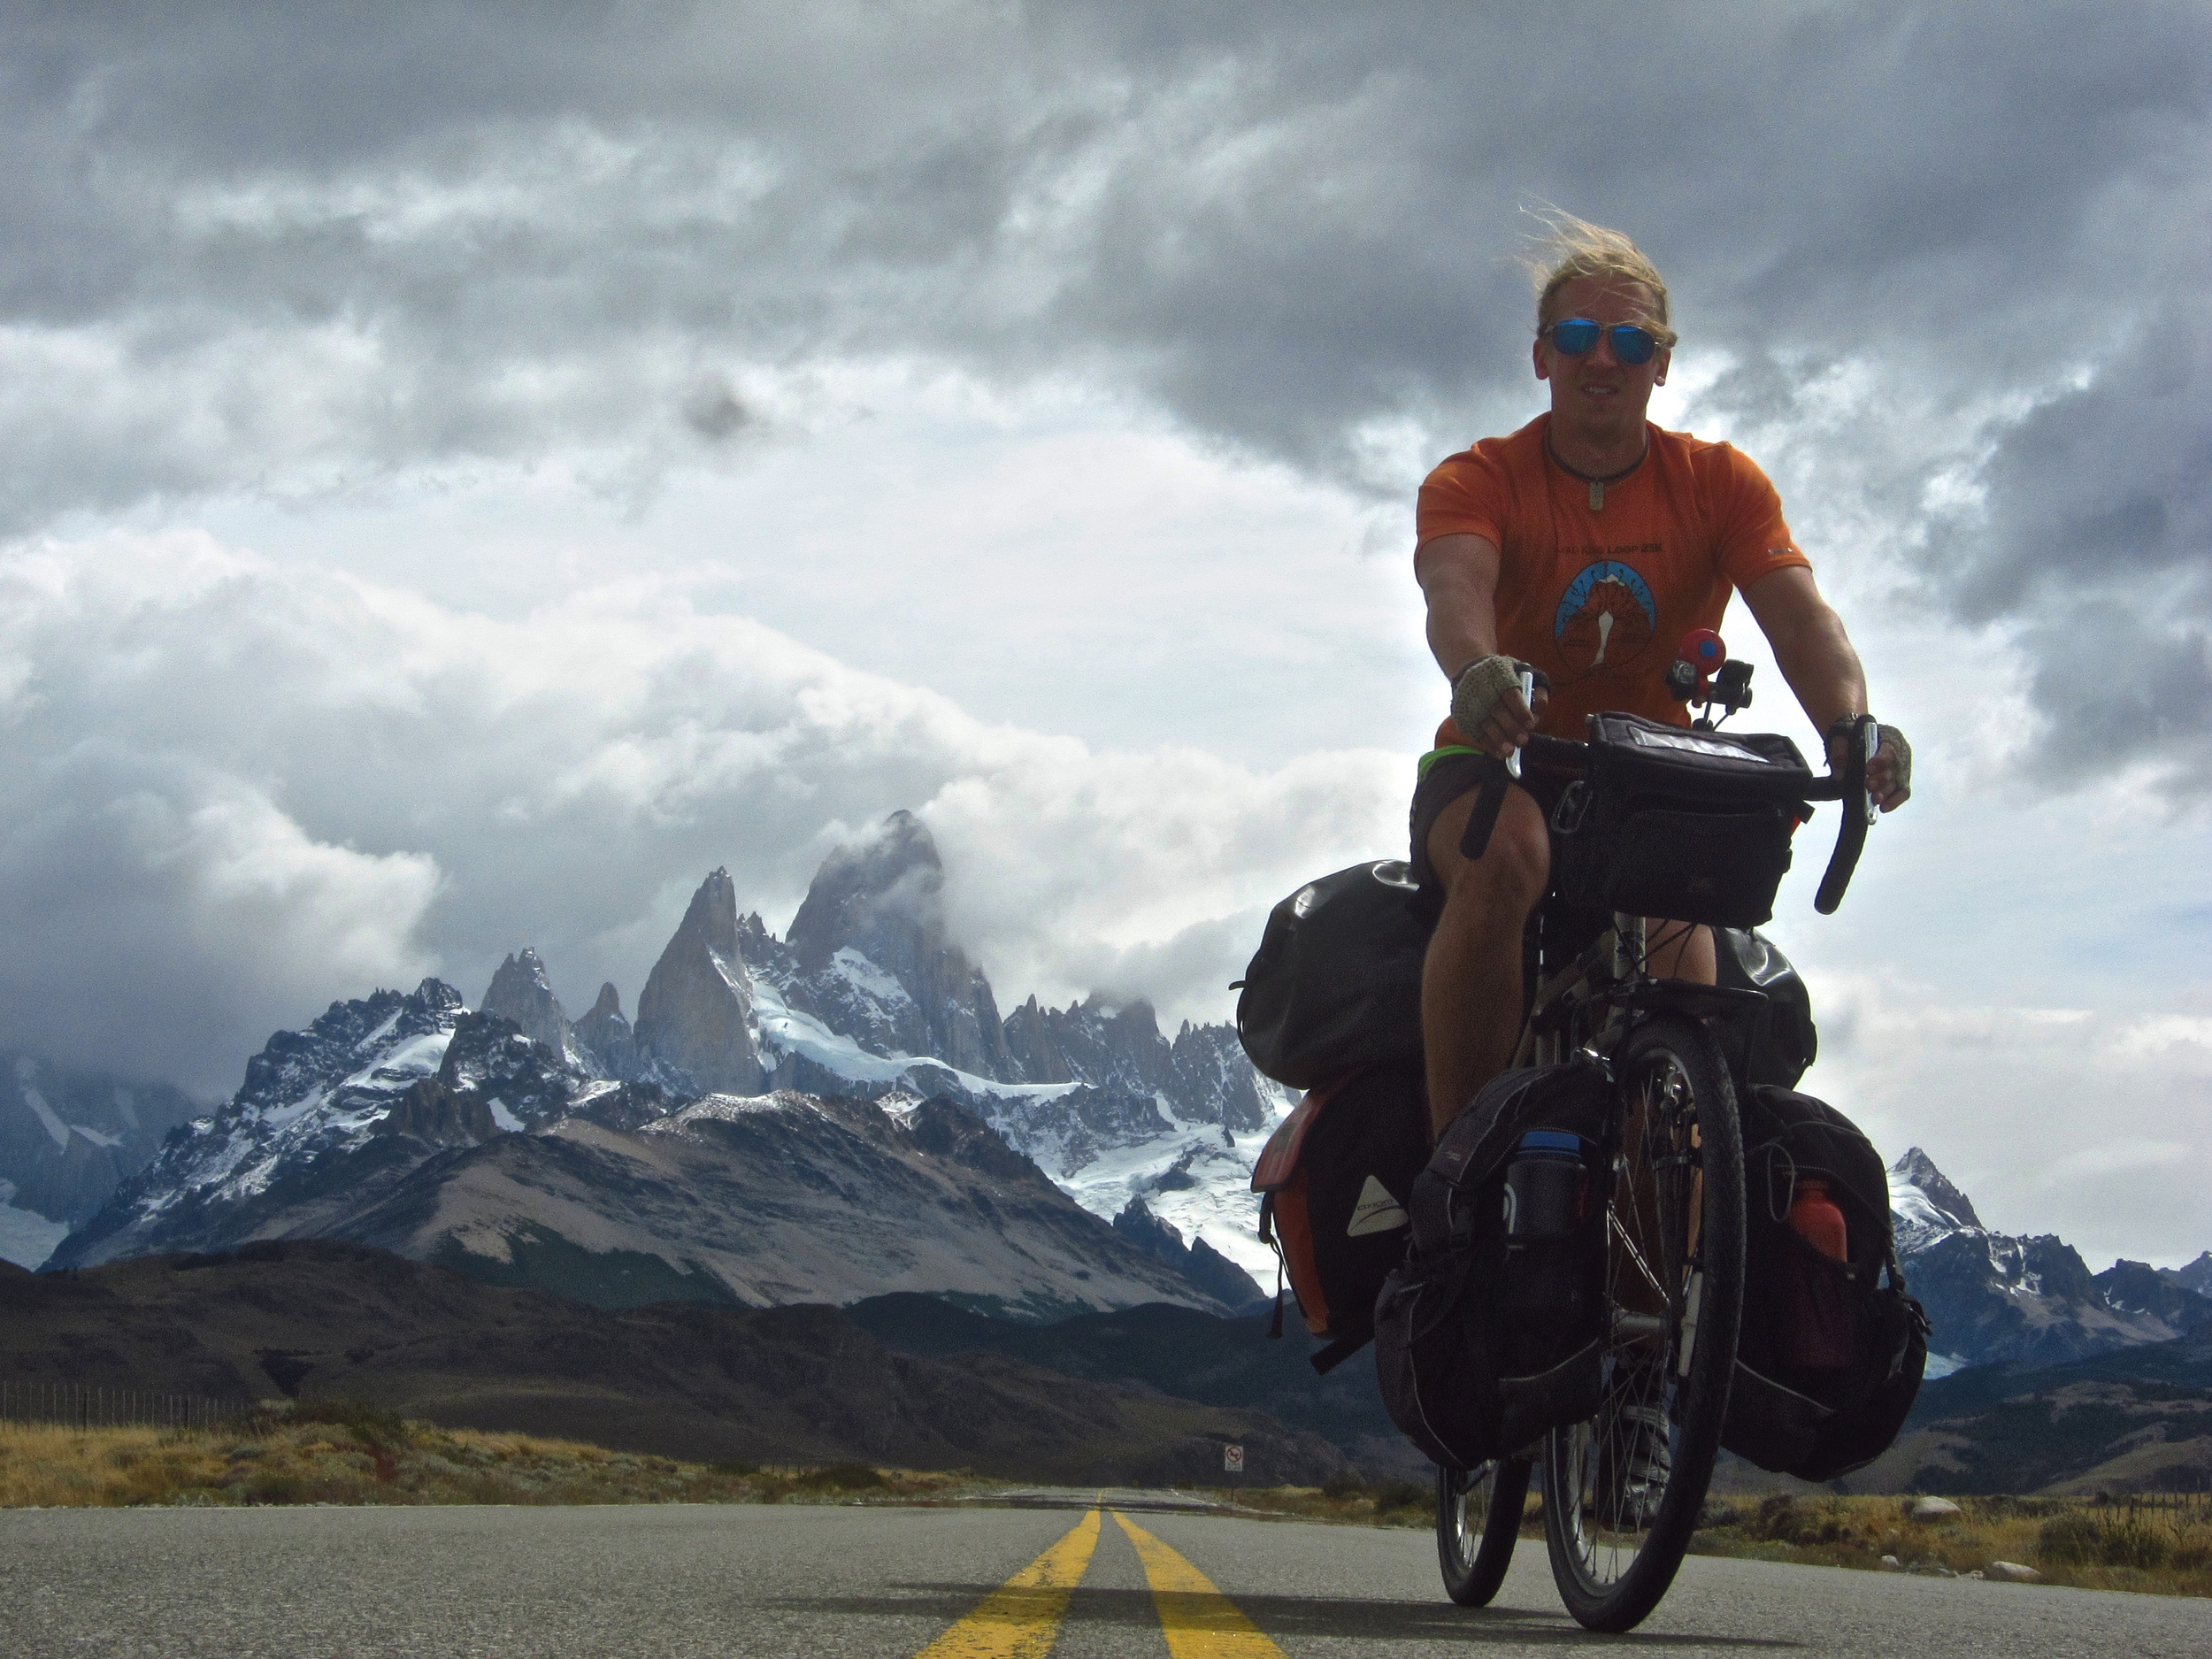 BICYCLE TOUR GUIDE